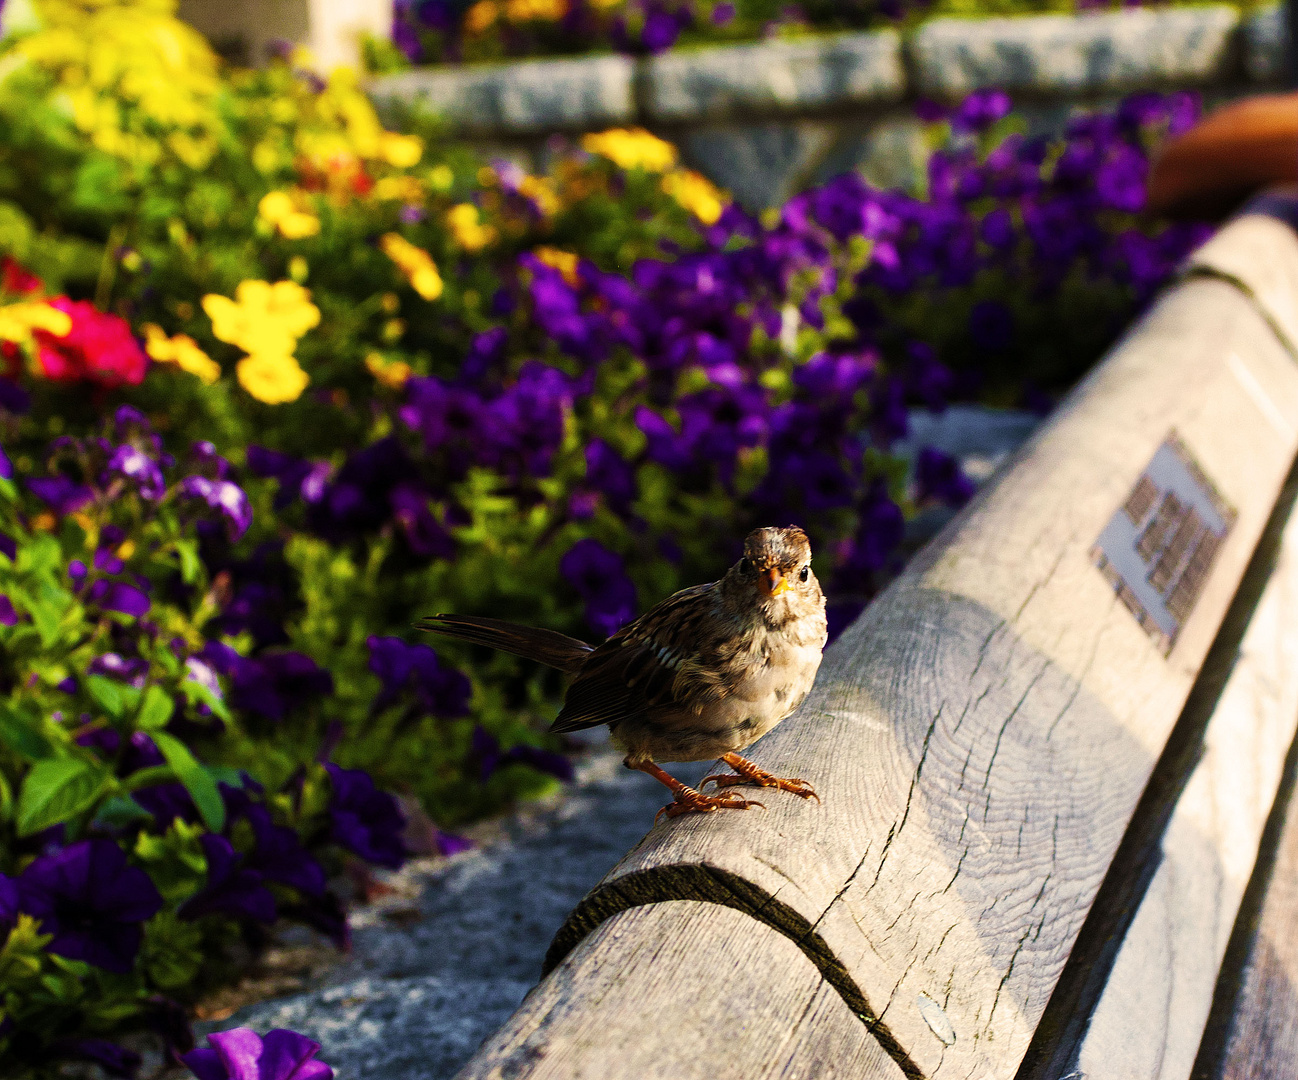 Feathered friend